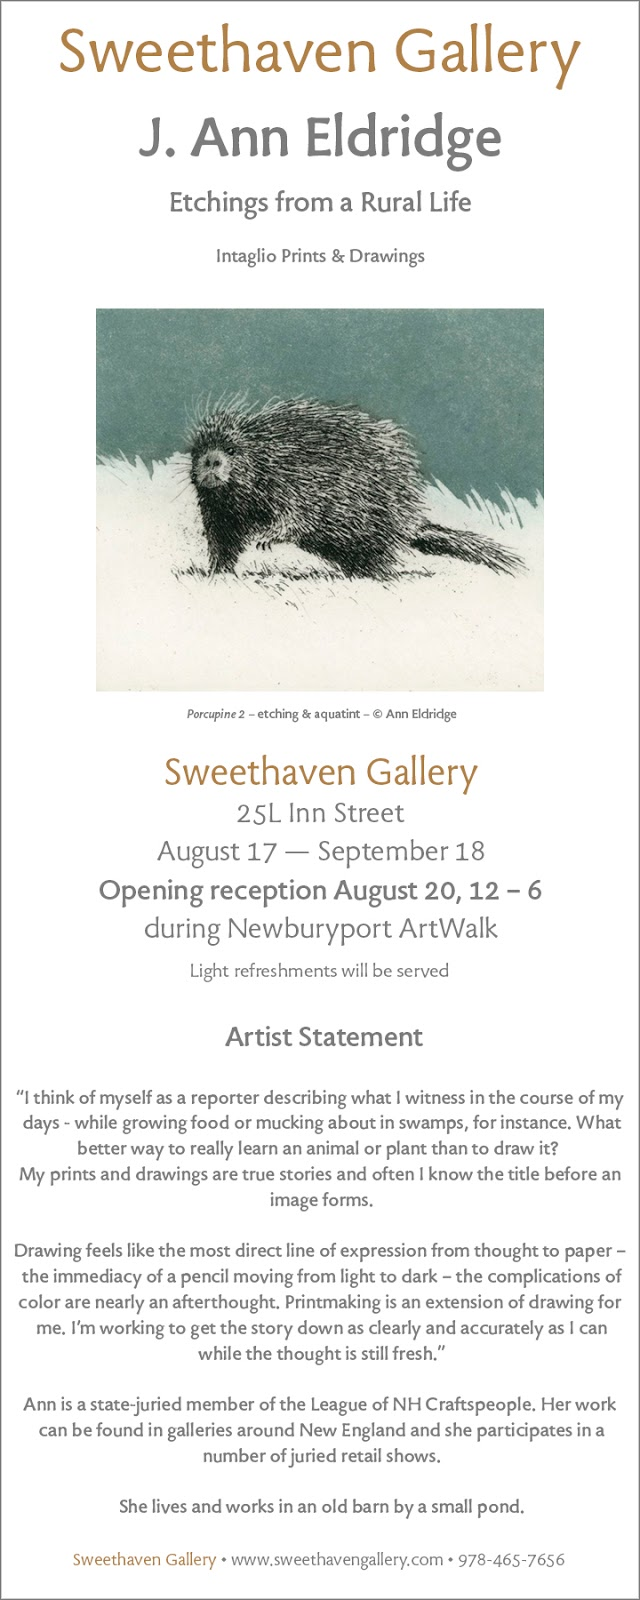 Sweethaven Gallery